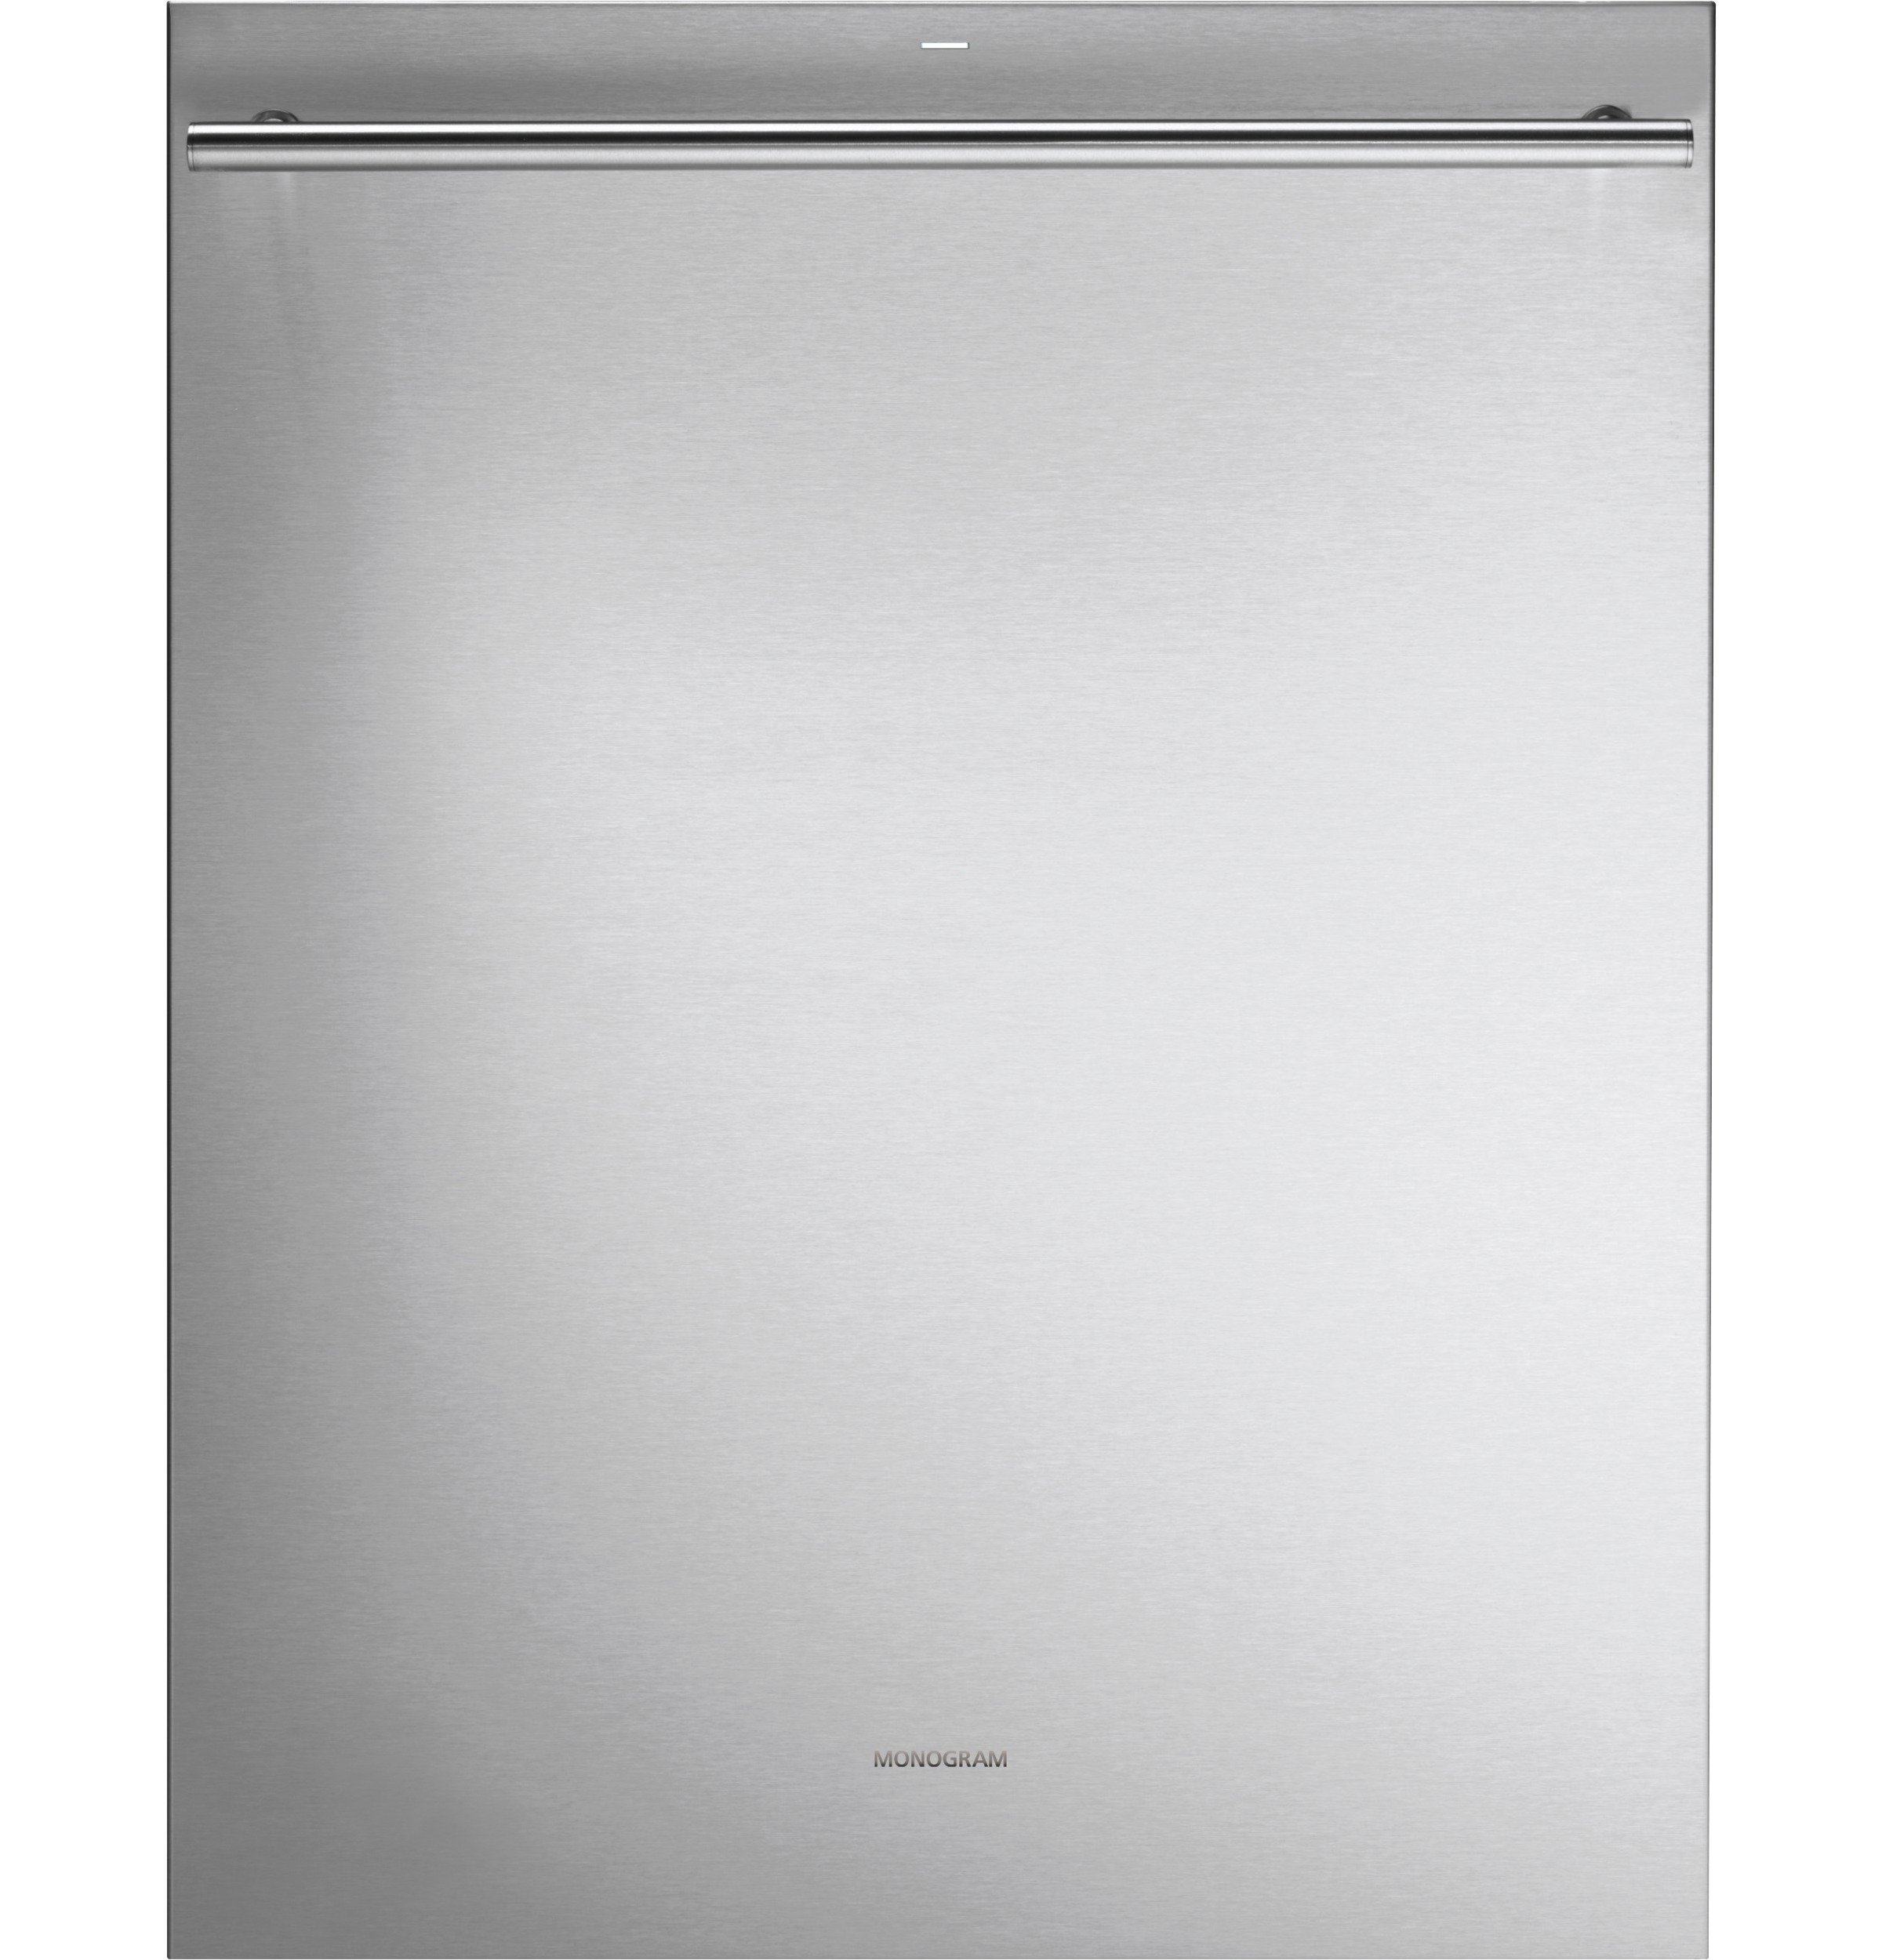 Monogram Monogram Smart Fully Integrated Dishwasher